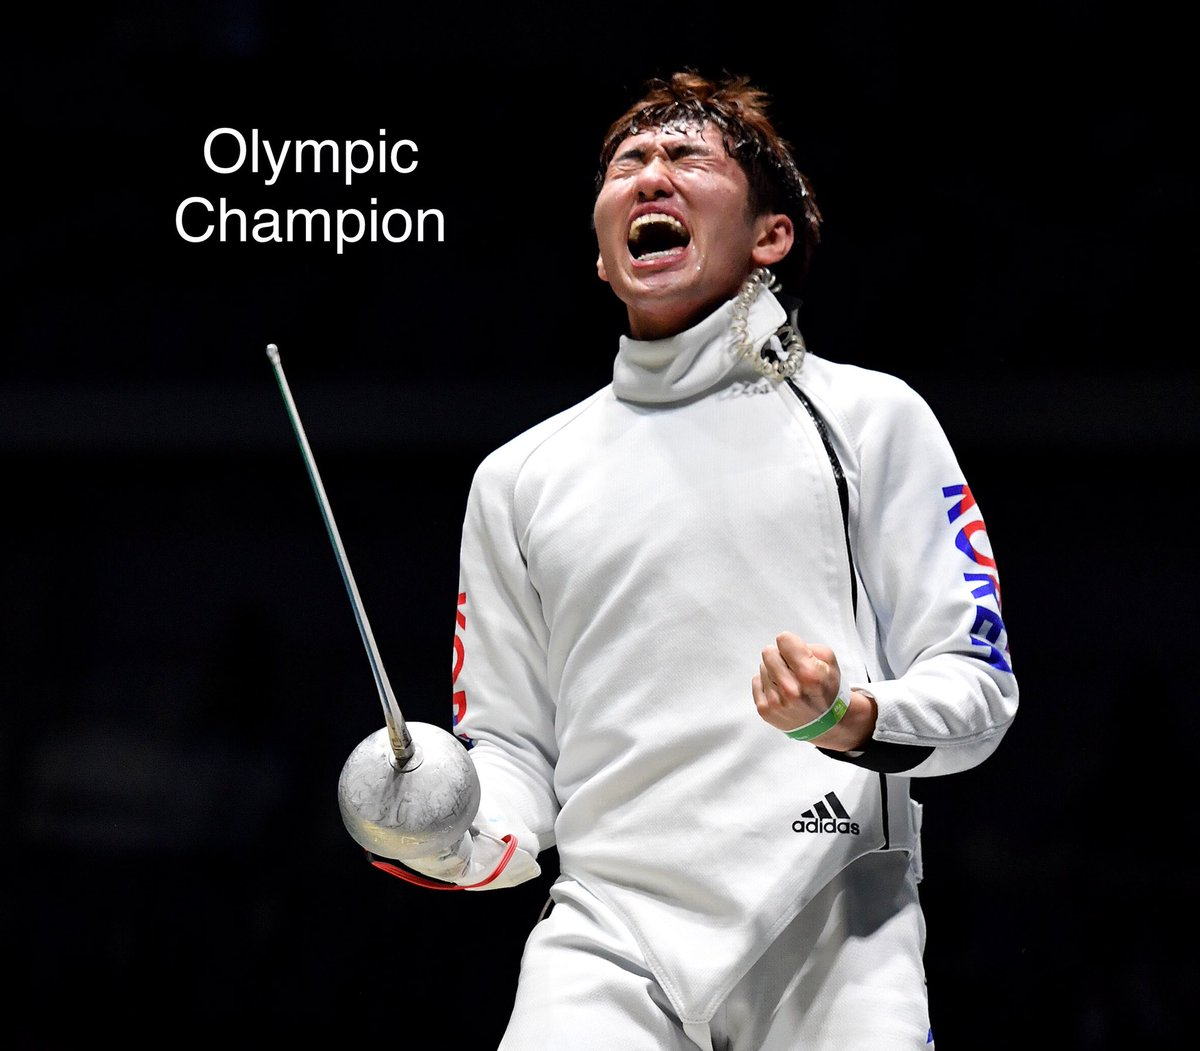 Park Sangyoung #KOR is the new #Olympics Champion in men's epee at #Rio2016 #Fencing